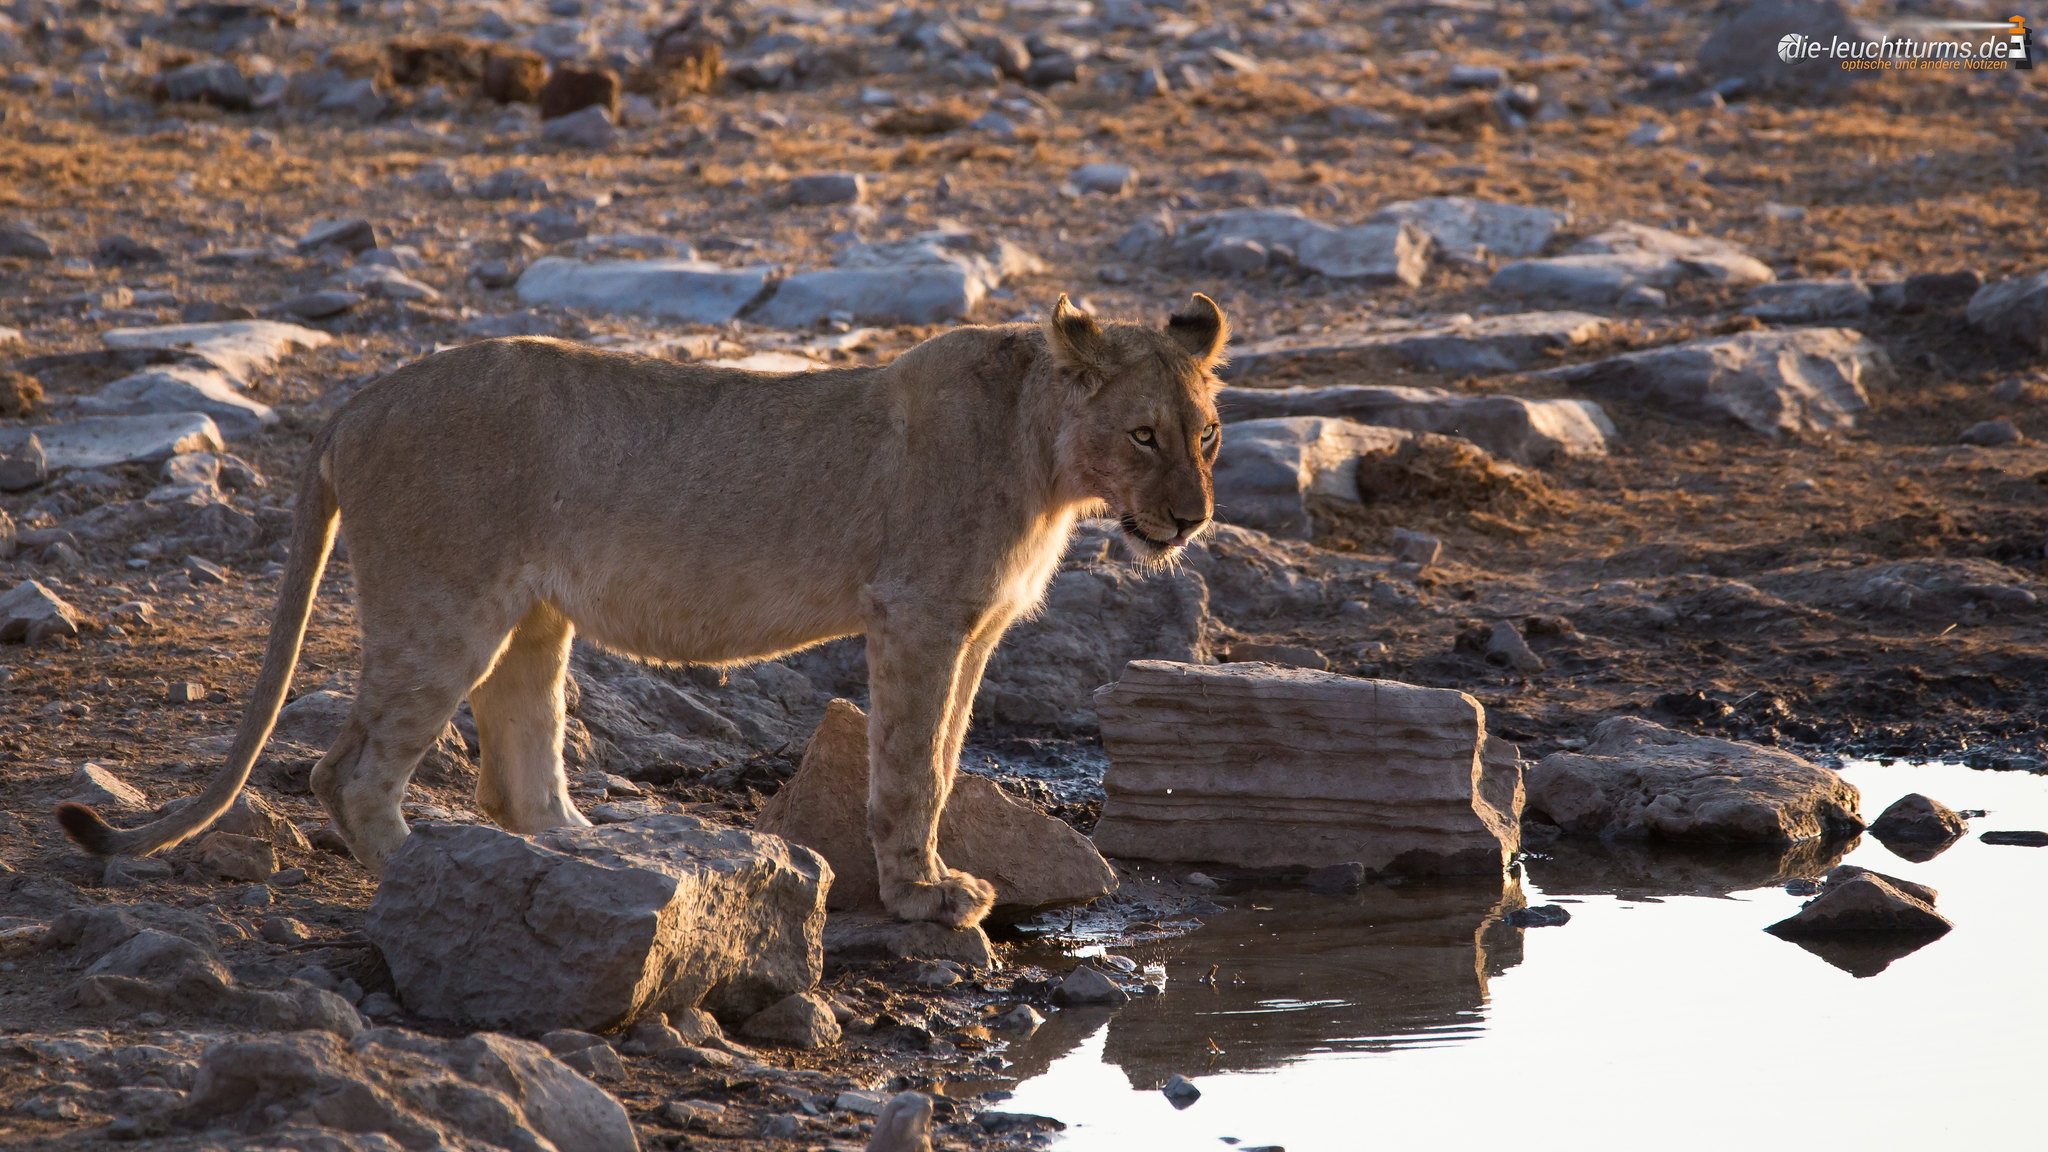 Sometime in the evening at Moringa Waterhole